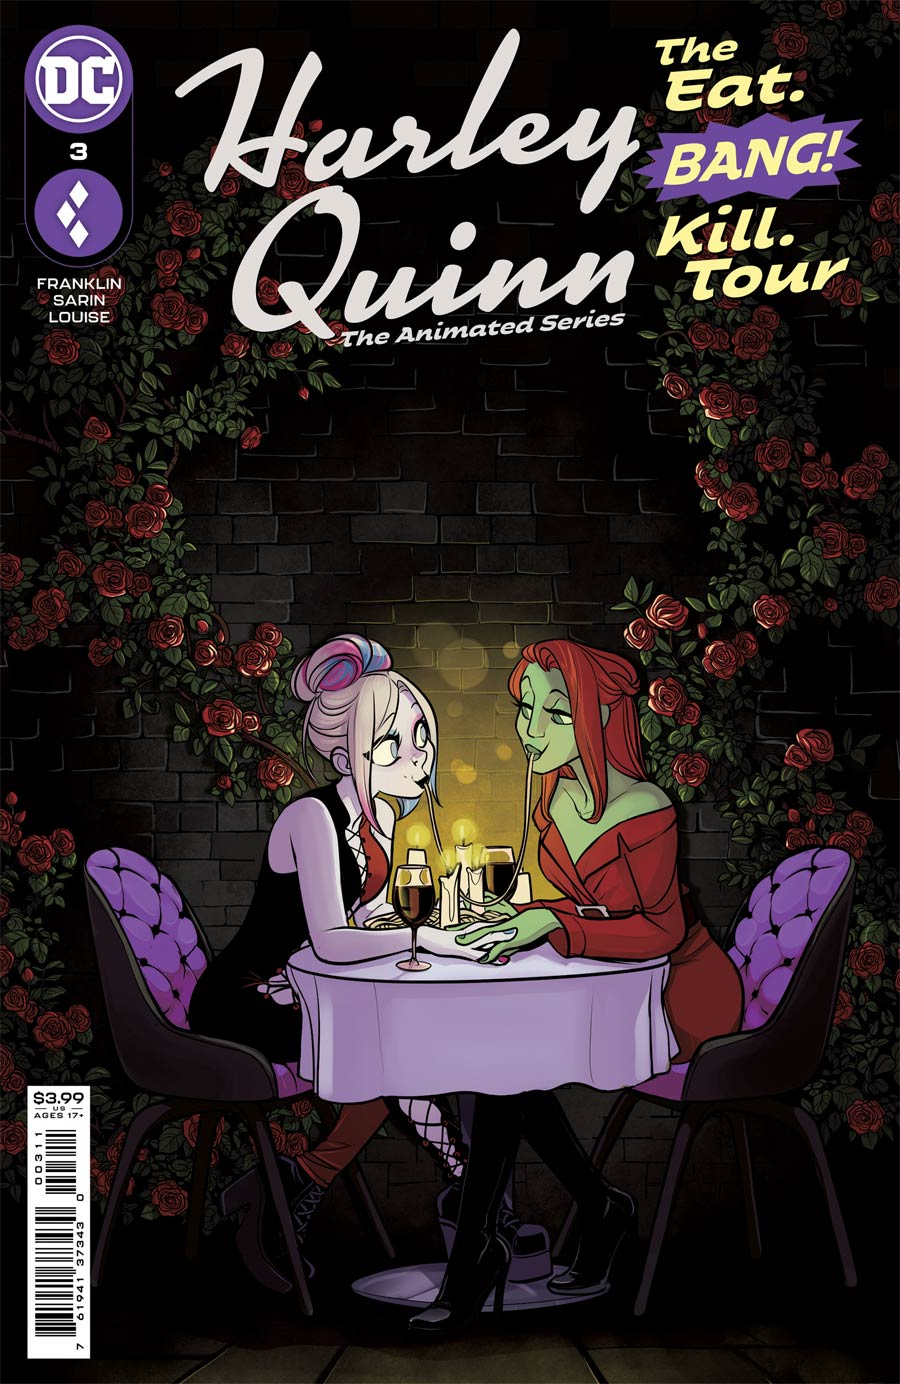 Harley Quinn The Animated Series The Eat Bang Kill Tour #3 Cover A Regular Max Sarin Cover